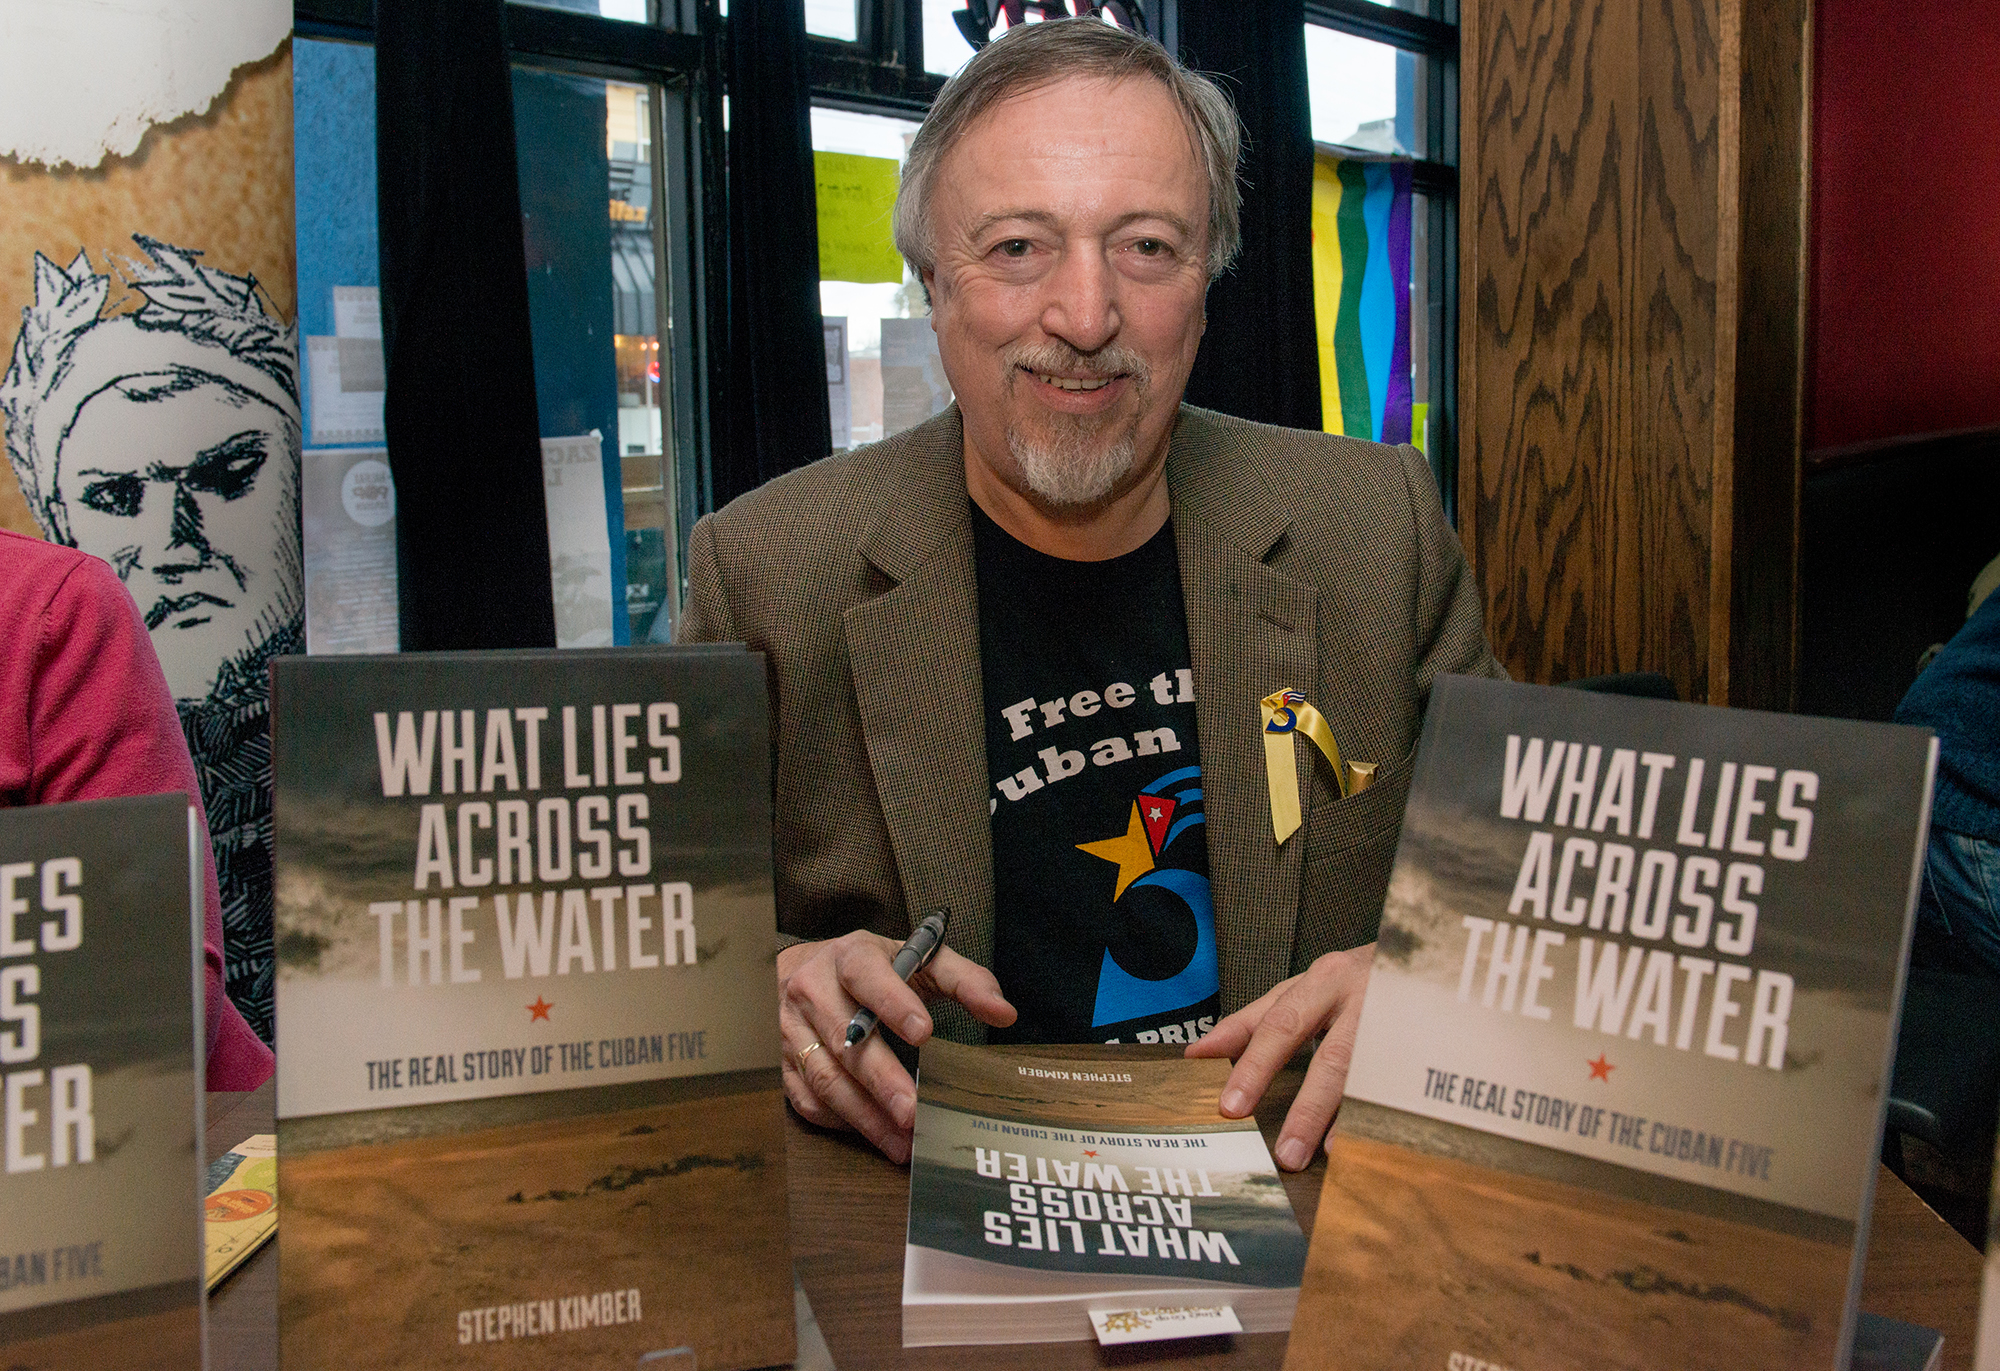 Stephen Kimber at his novel release event (photo by Amin Helal)